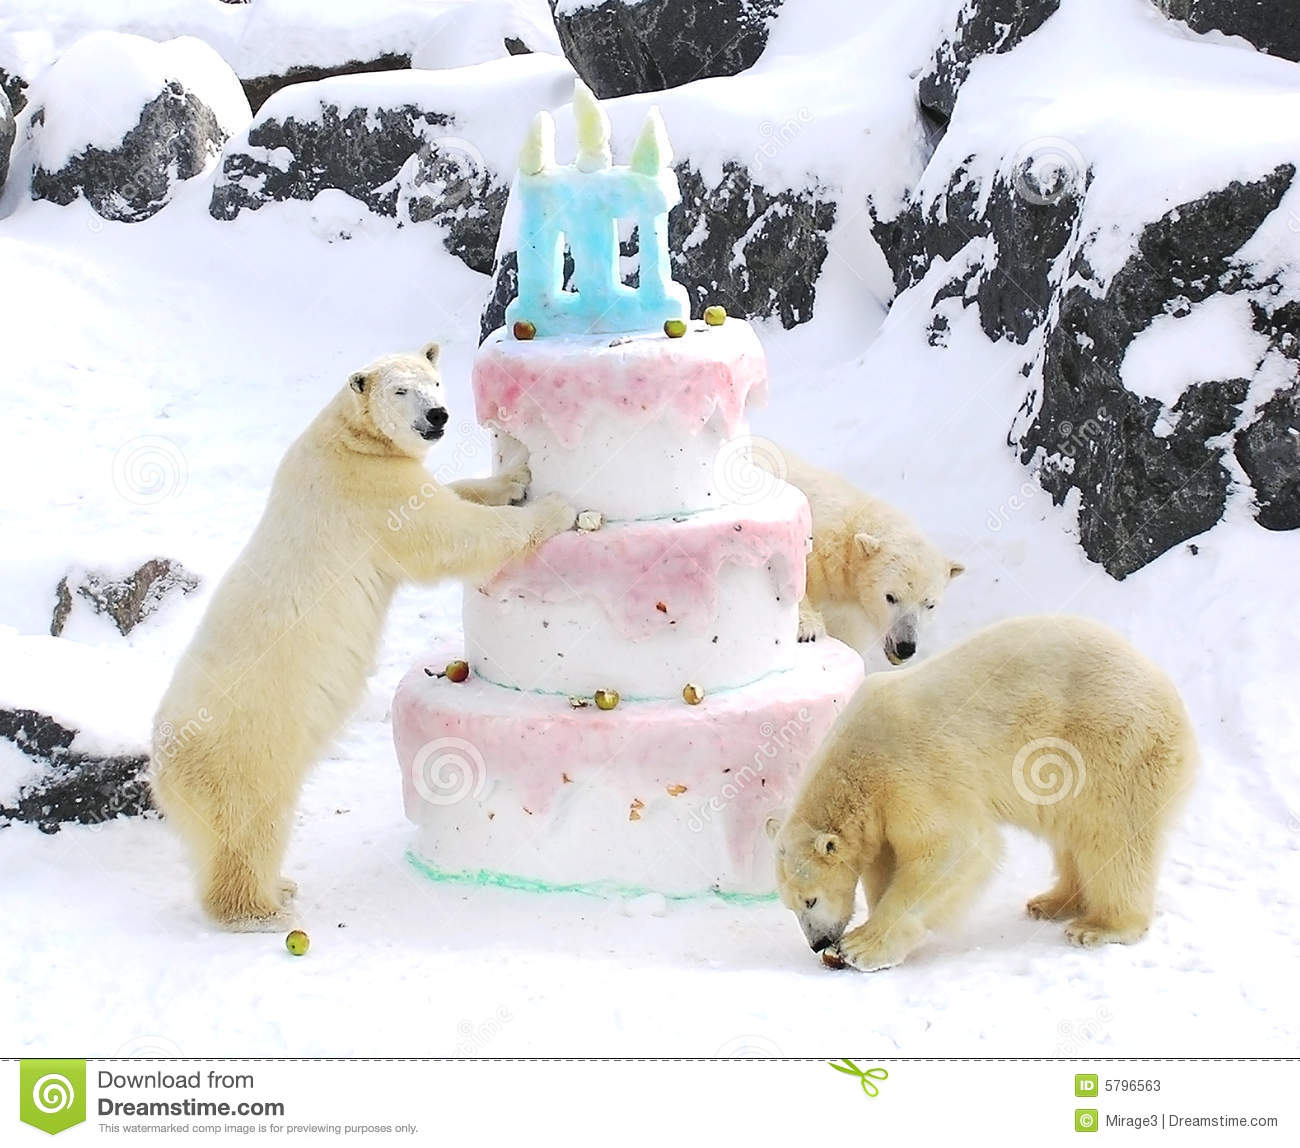 Download Polar Bears Giant Birthday Cake Stock Image - Image of happy, polar: 5796563